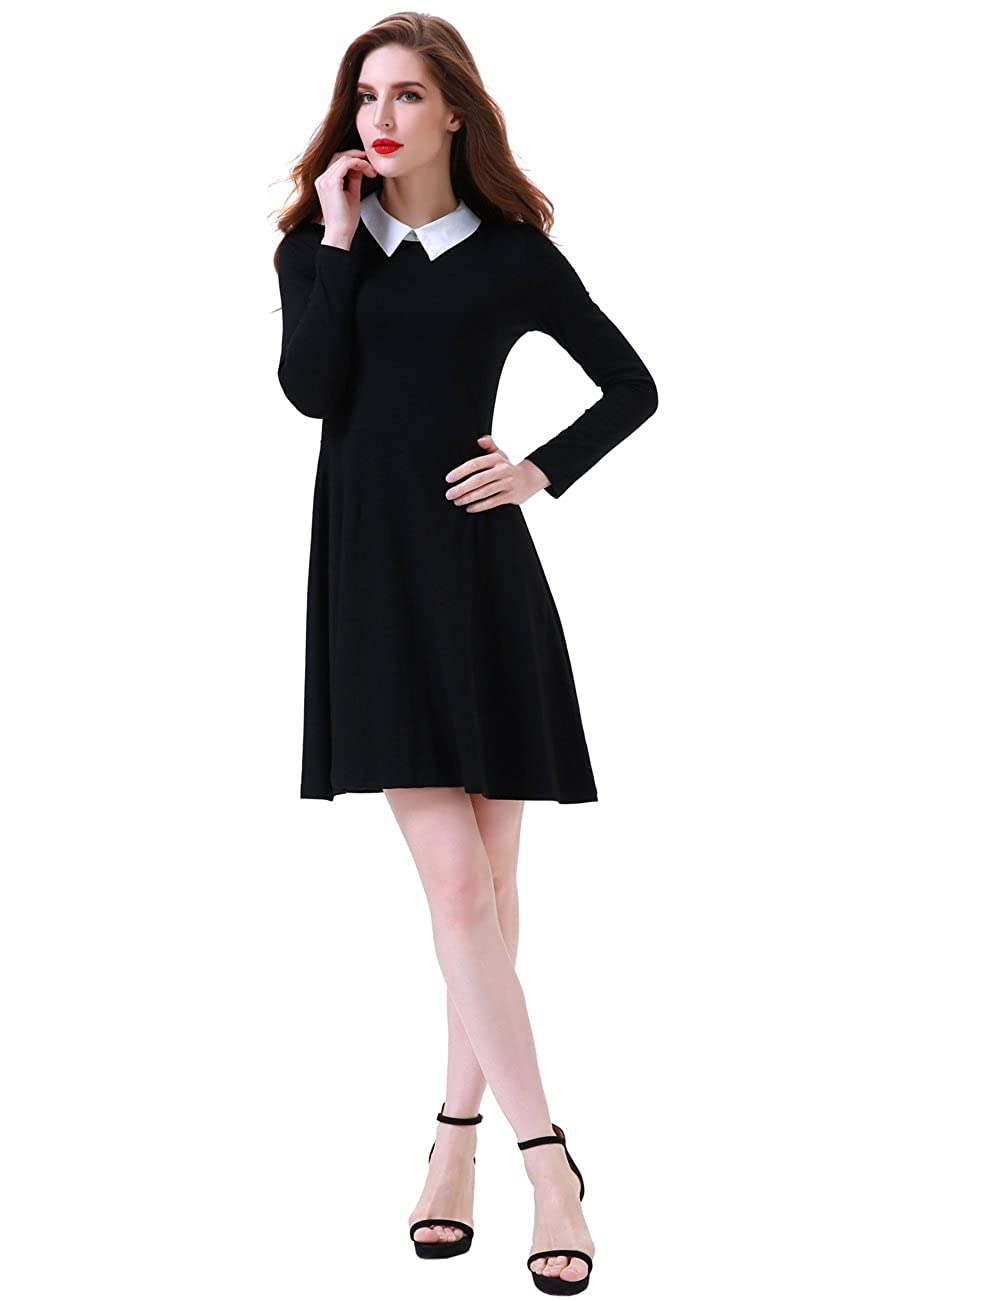 bce8dcaf7 Aphratti Women's Long Sleeve Casual Shirt Peter Pan Collar Flare Dress at  Amazon Women's Clothing store: